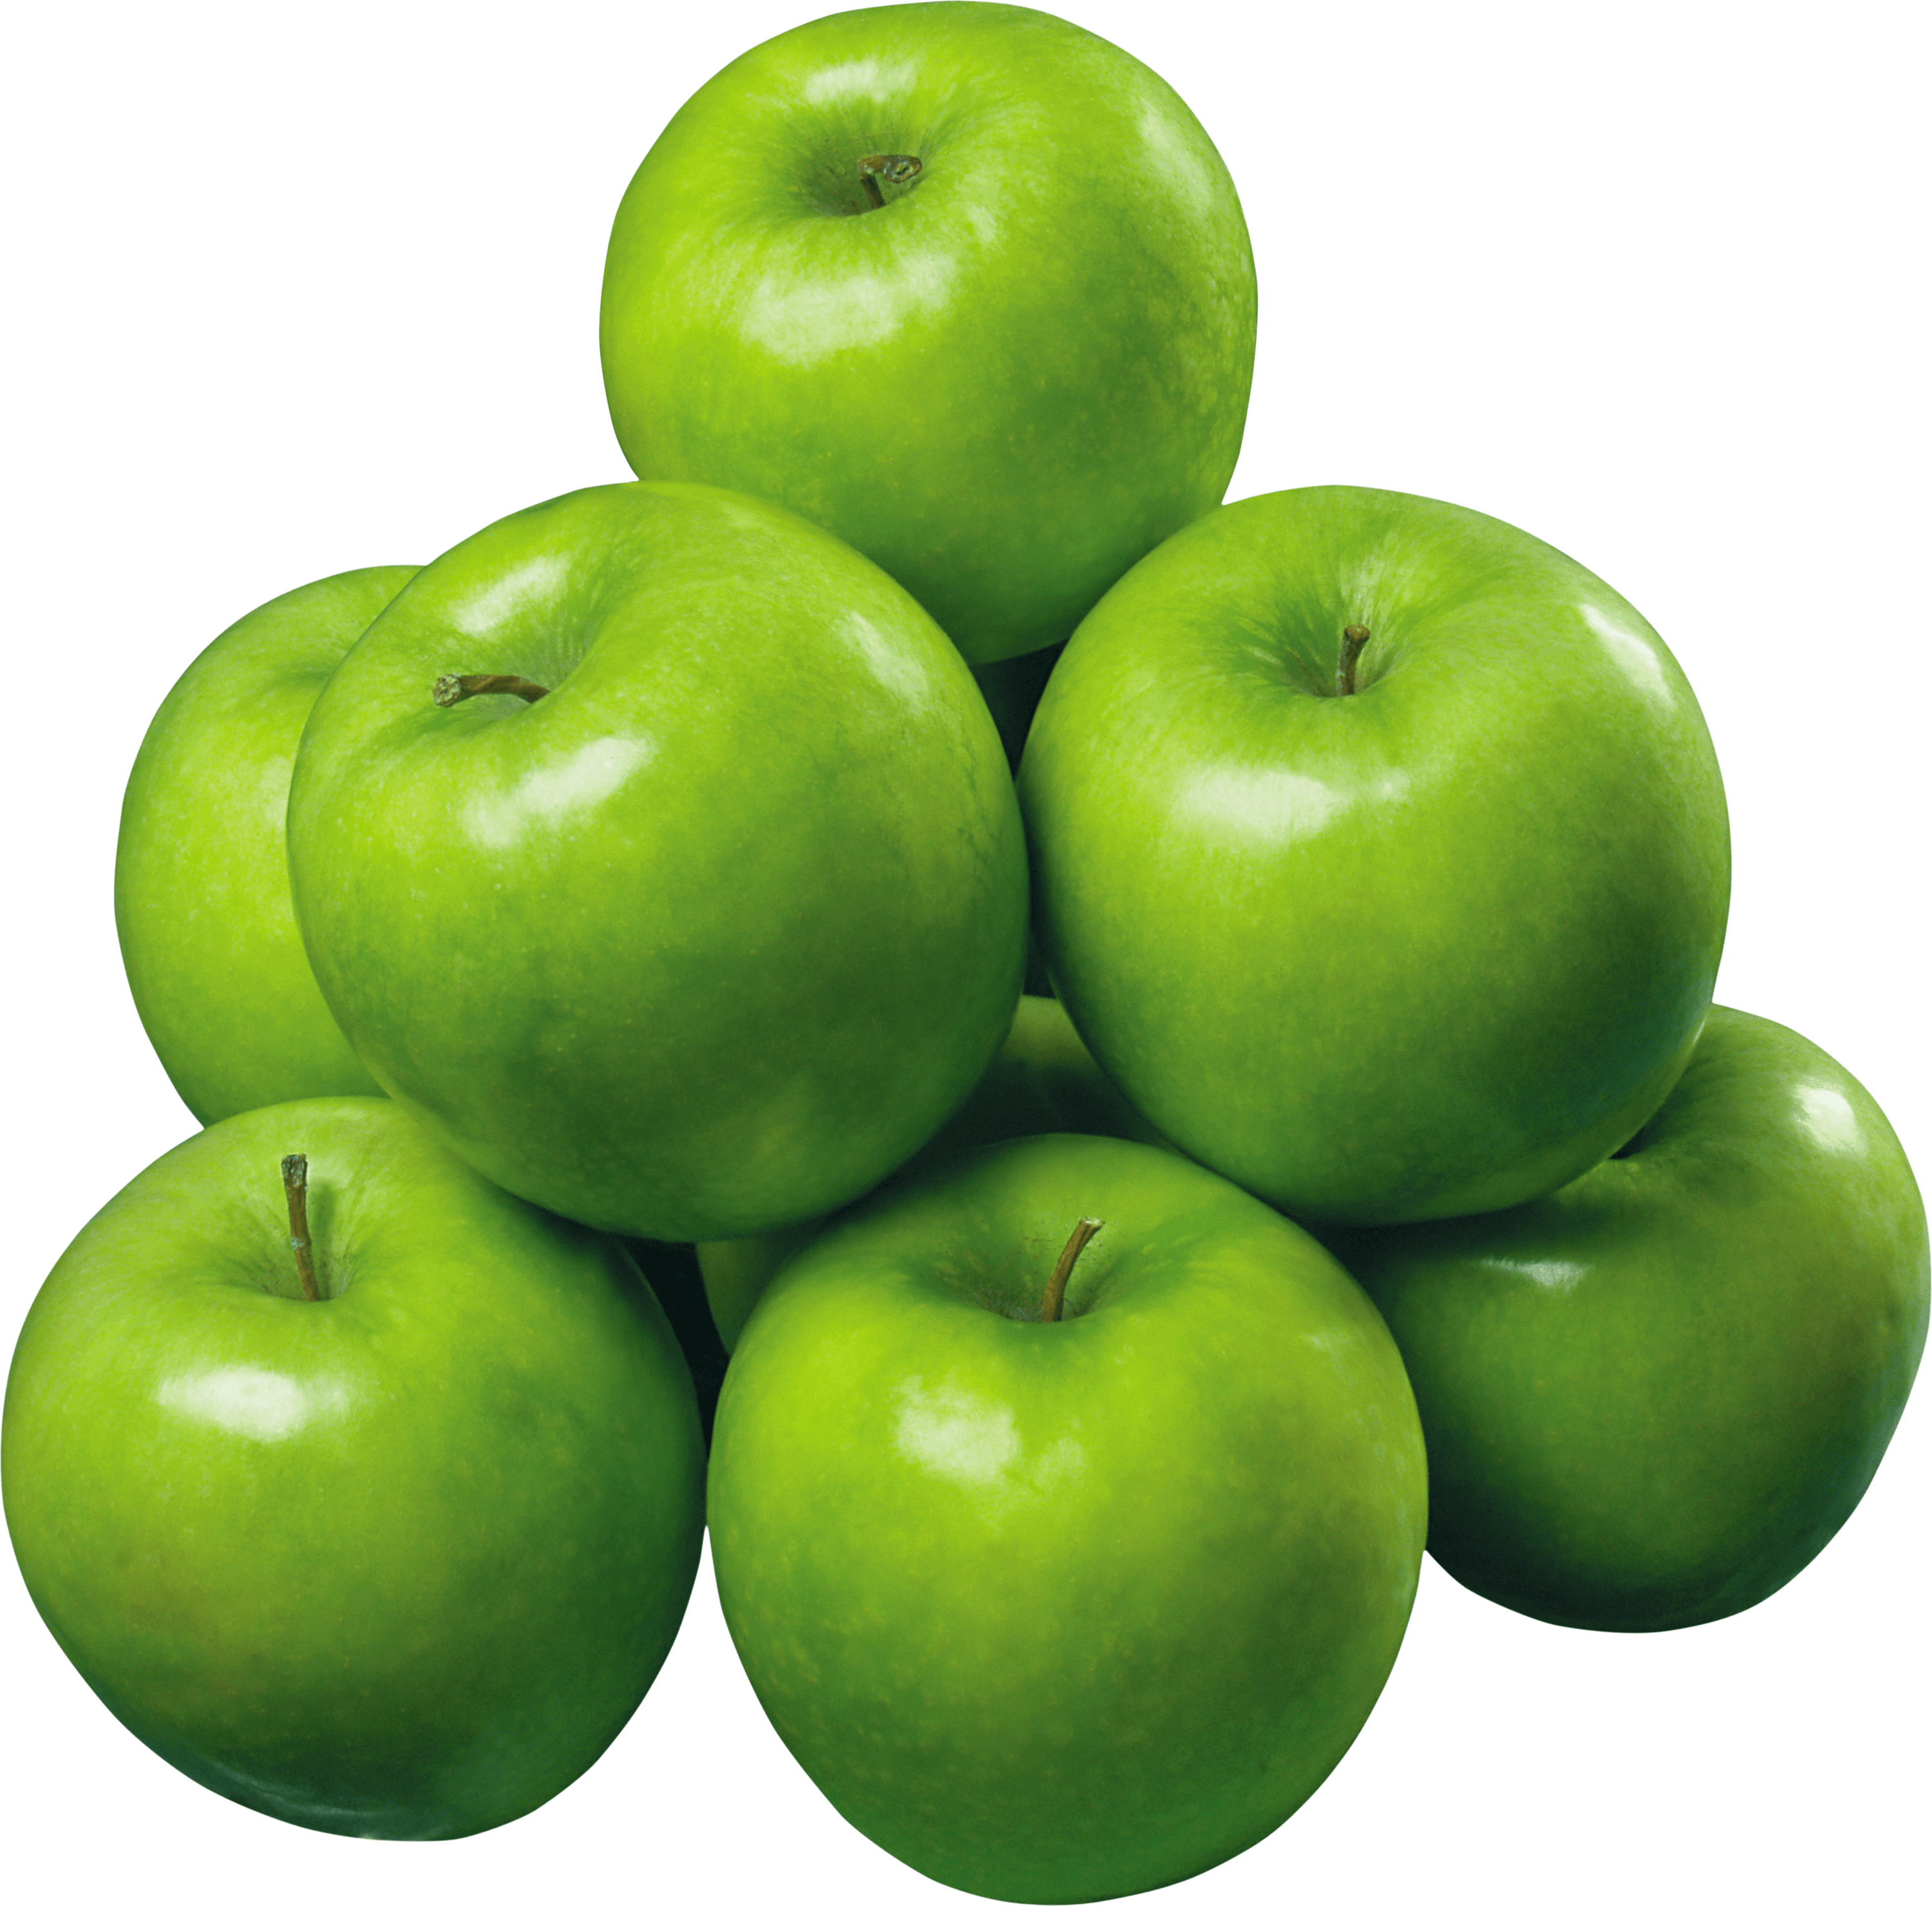 Apple Green Pile transparent PNG.